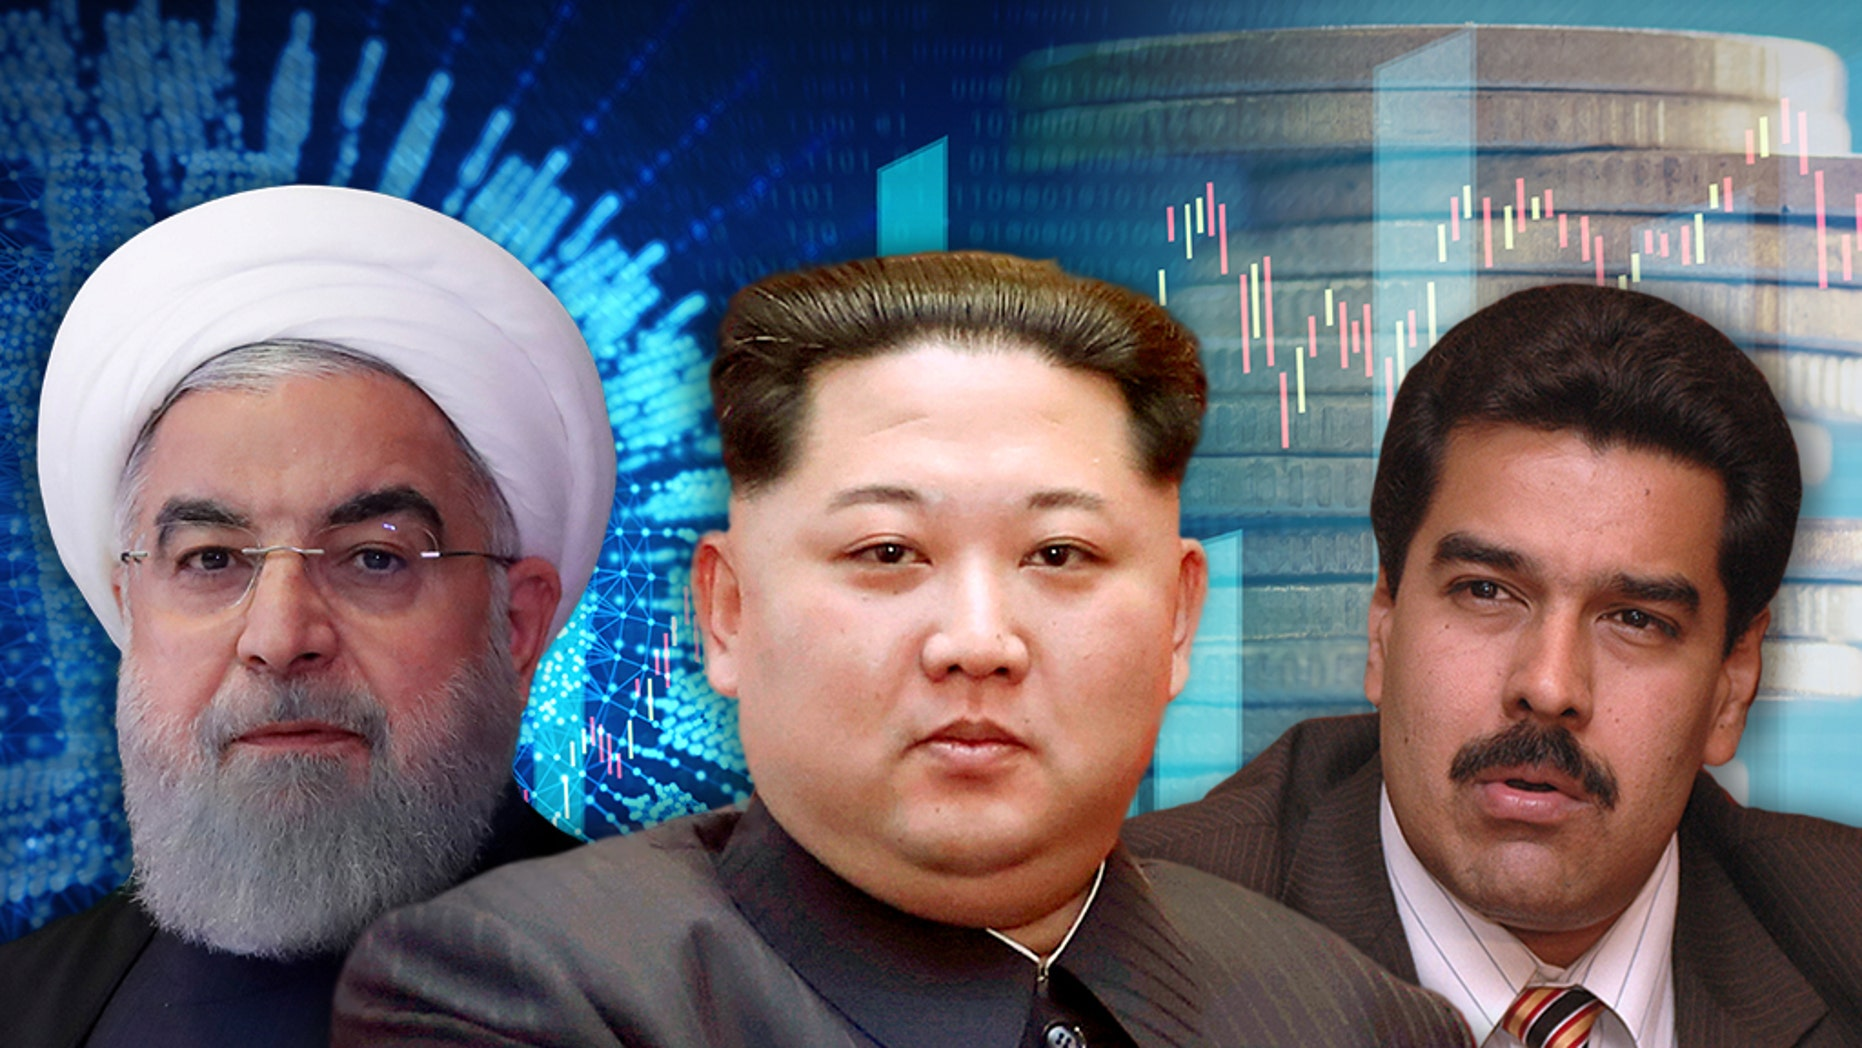 Countries including Iran (leader Hassan Rouhani left), North Korea (Kim Jong-un center) and Venezuela (Nicolas Maduro) are turning to cryptocurrencies to circumvent U.S. sanctions